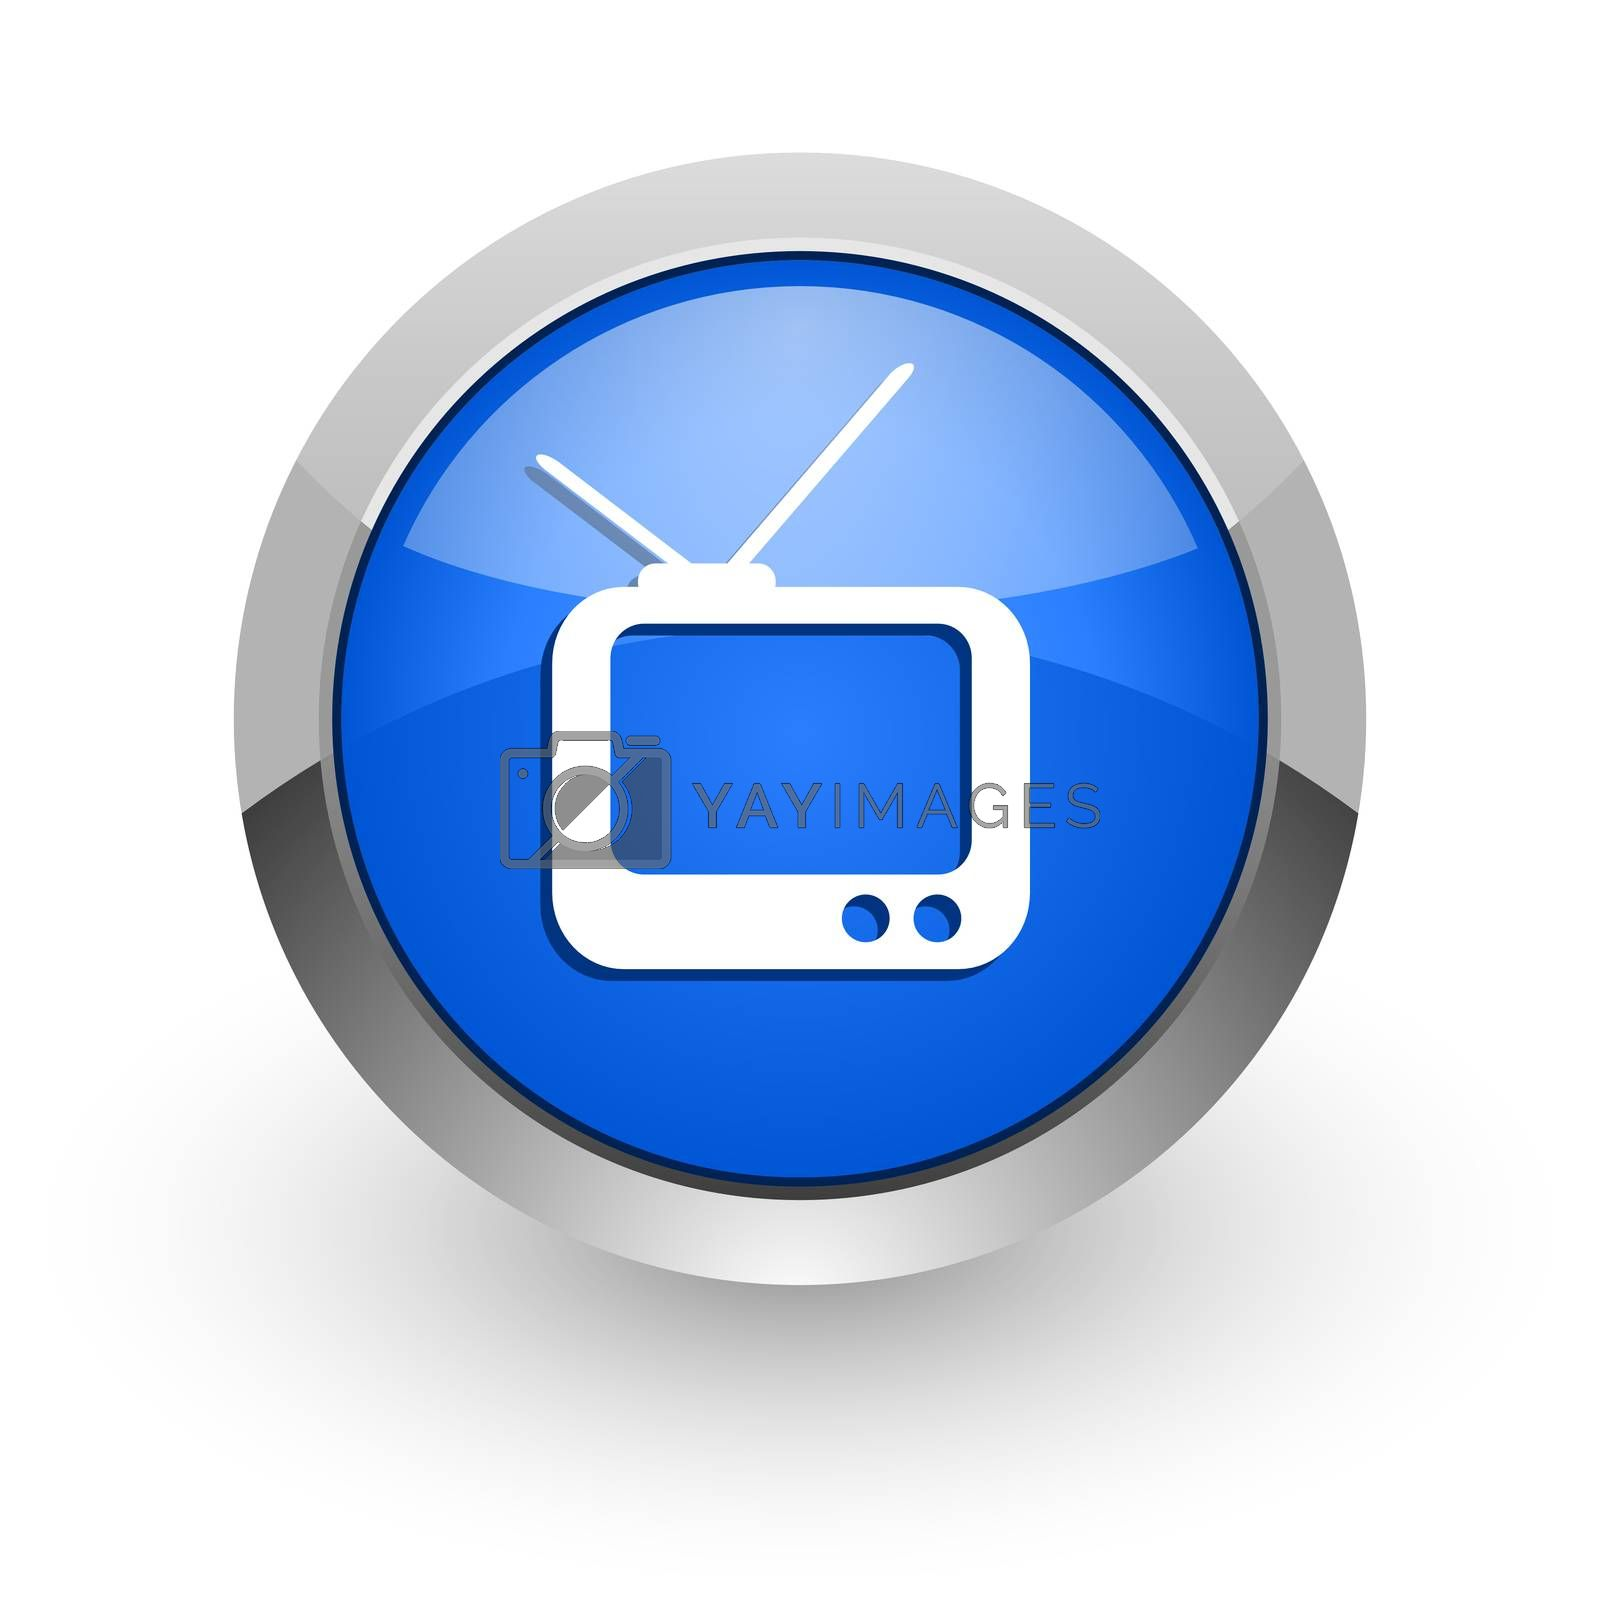 Royalty free image of tv blue glossy web icon by alexwhite